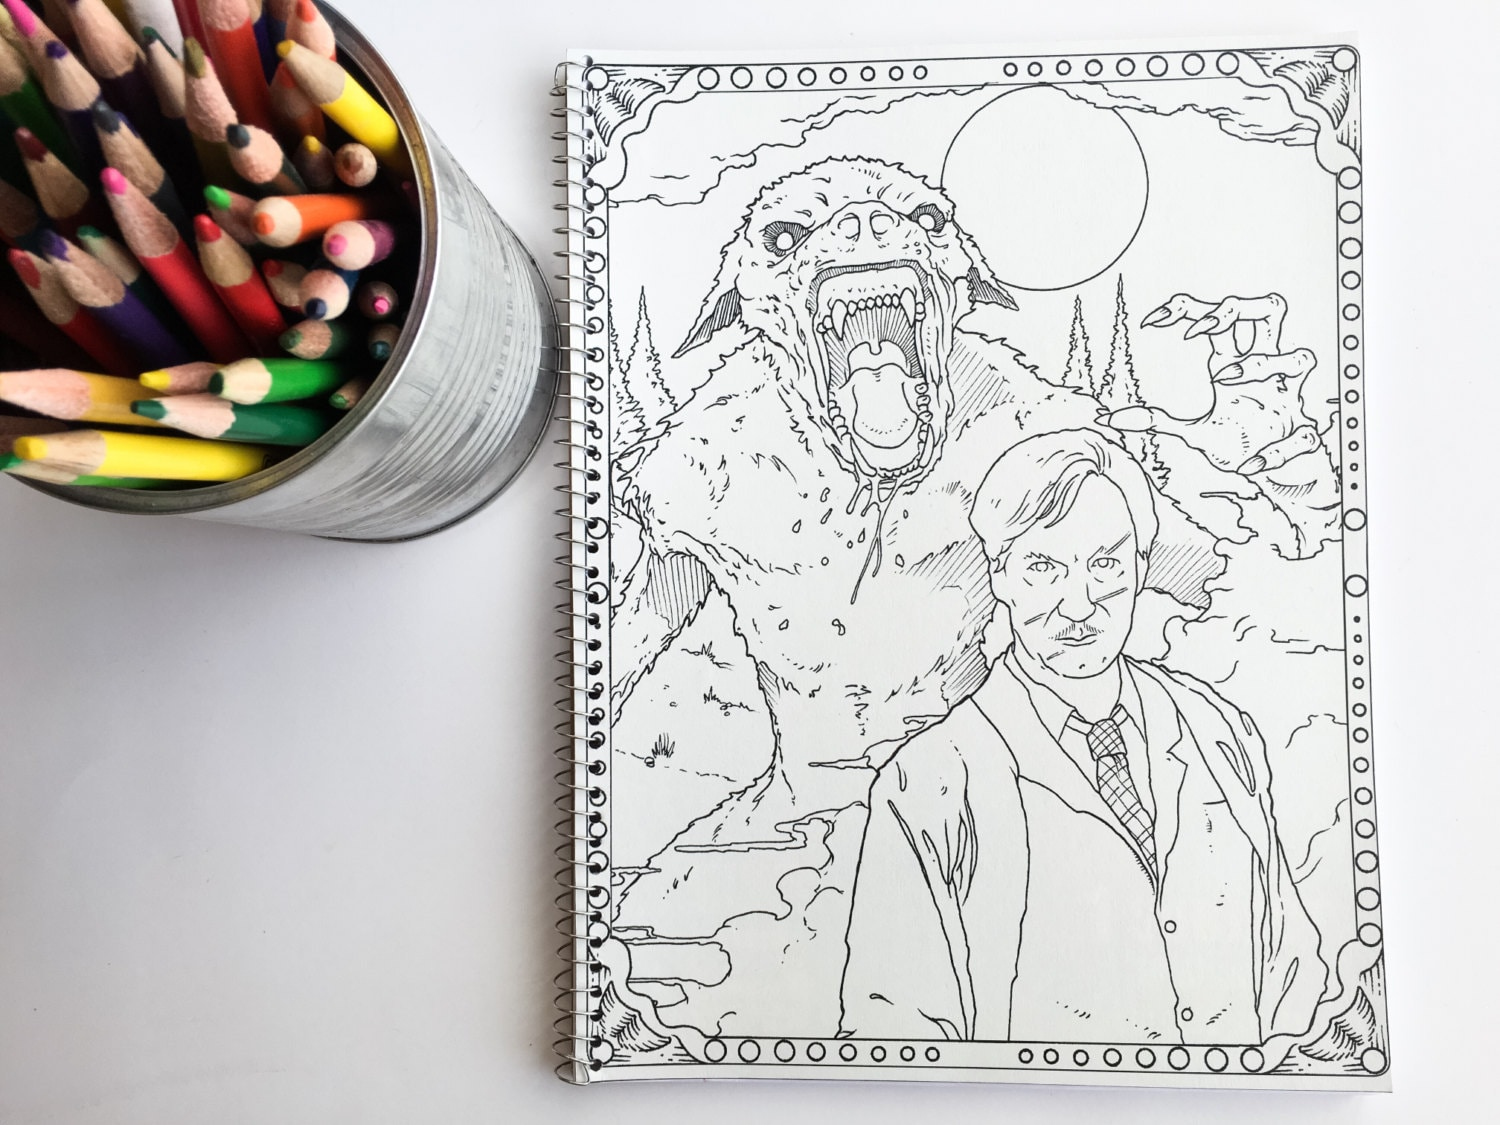 Harry Potter adult coloring book notebook with Lupin and